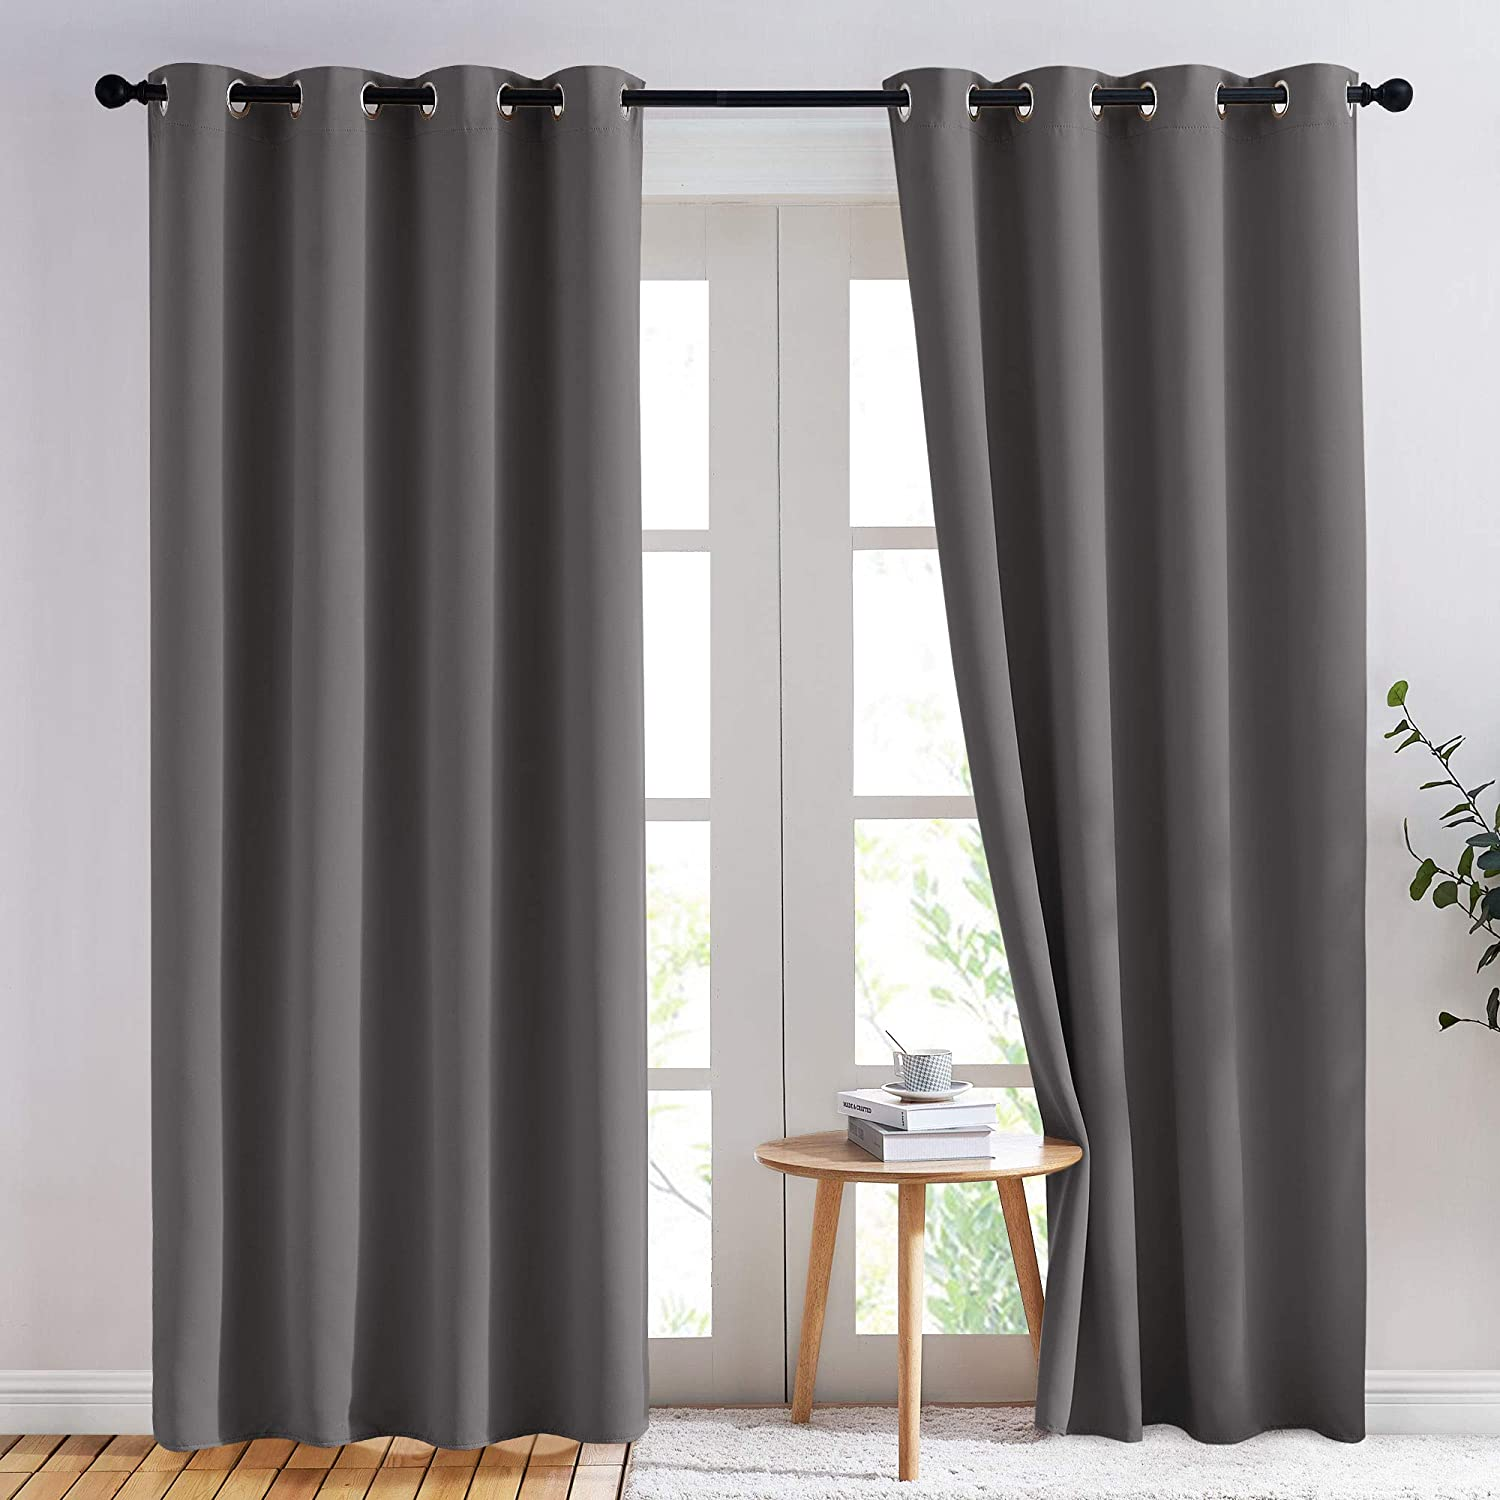 NICETOWN Blackout Curtains Panels for Bedroom - 3 Pass Microfiber Noise Reducing Thermal Insulated Solid Ring Top Blackout Window Drapes (2 Panels, 52 x 84...